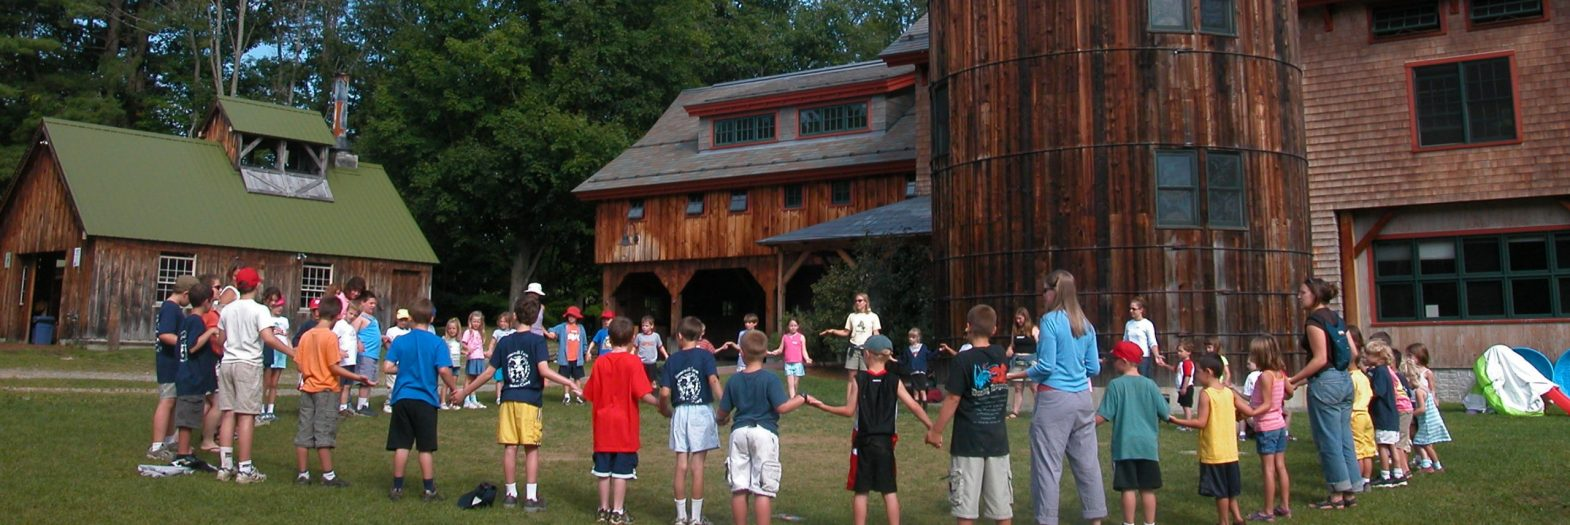 A kids camp circle with a barn and silo in the background